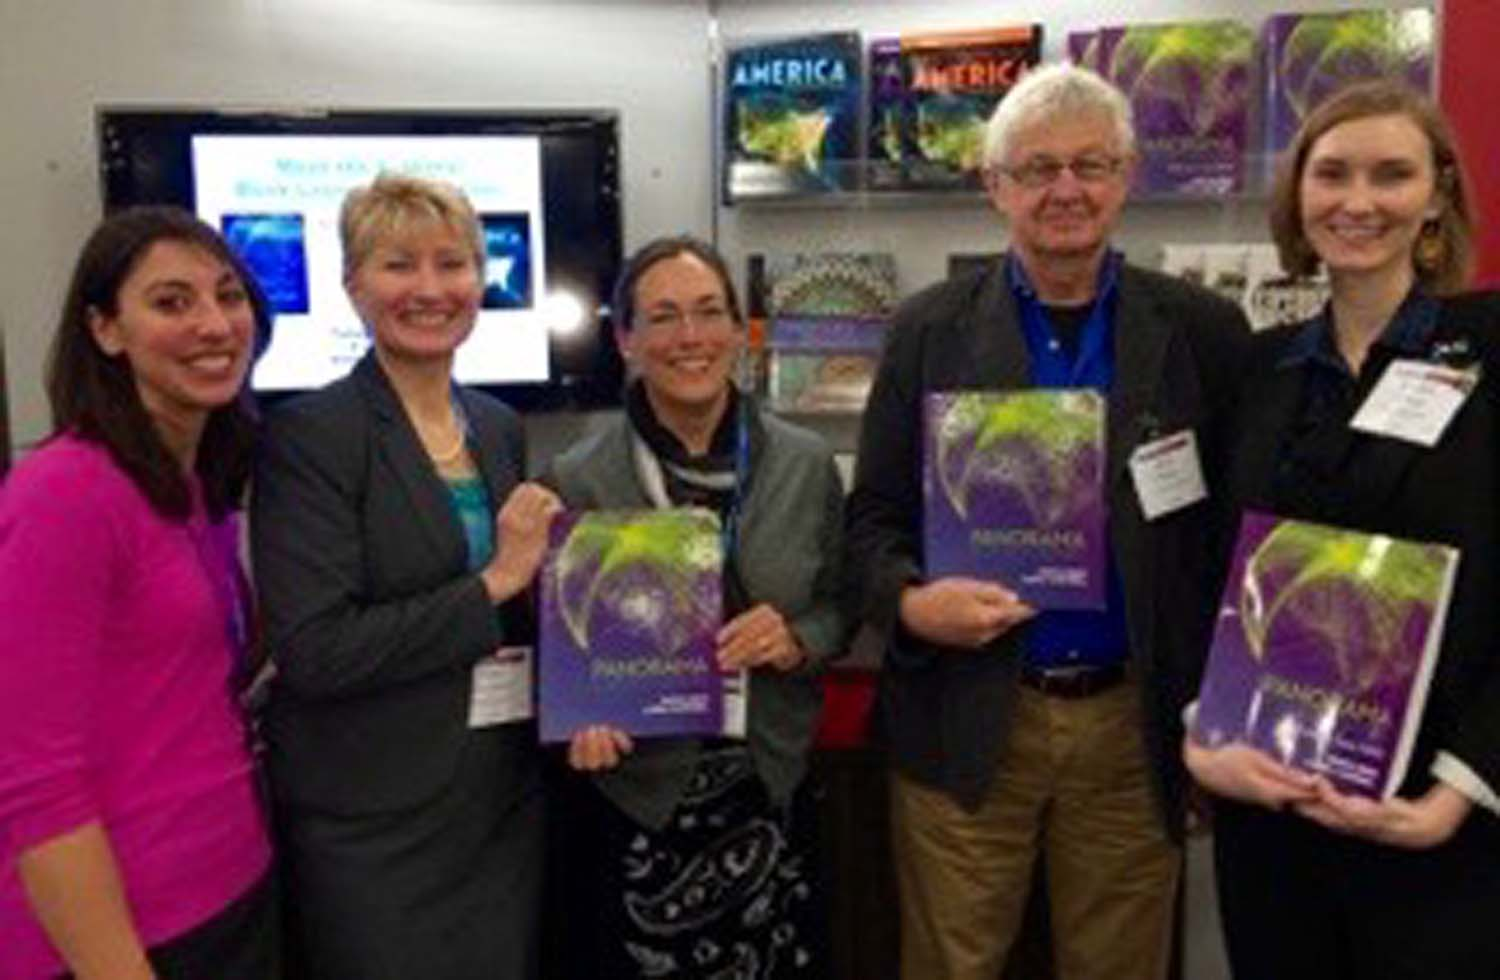 Launch of  Panorama: A World History  at the American Historical Association annual meeting in Washington, DC, January 2014. Authors Ross Dunn and Laura Mitchell (center) with McGraw-Hill Education editors.